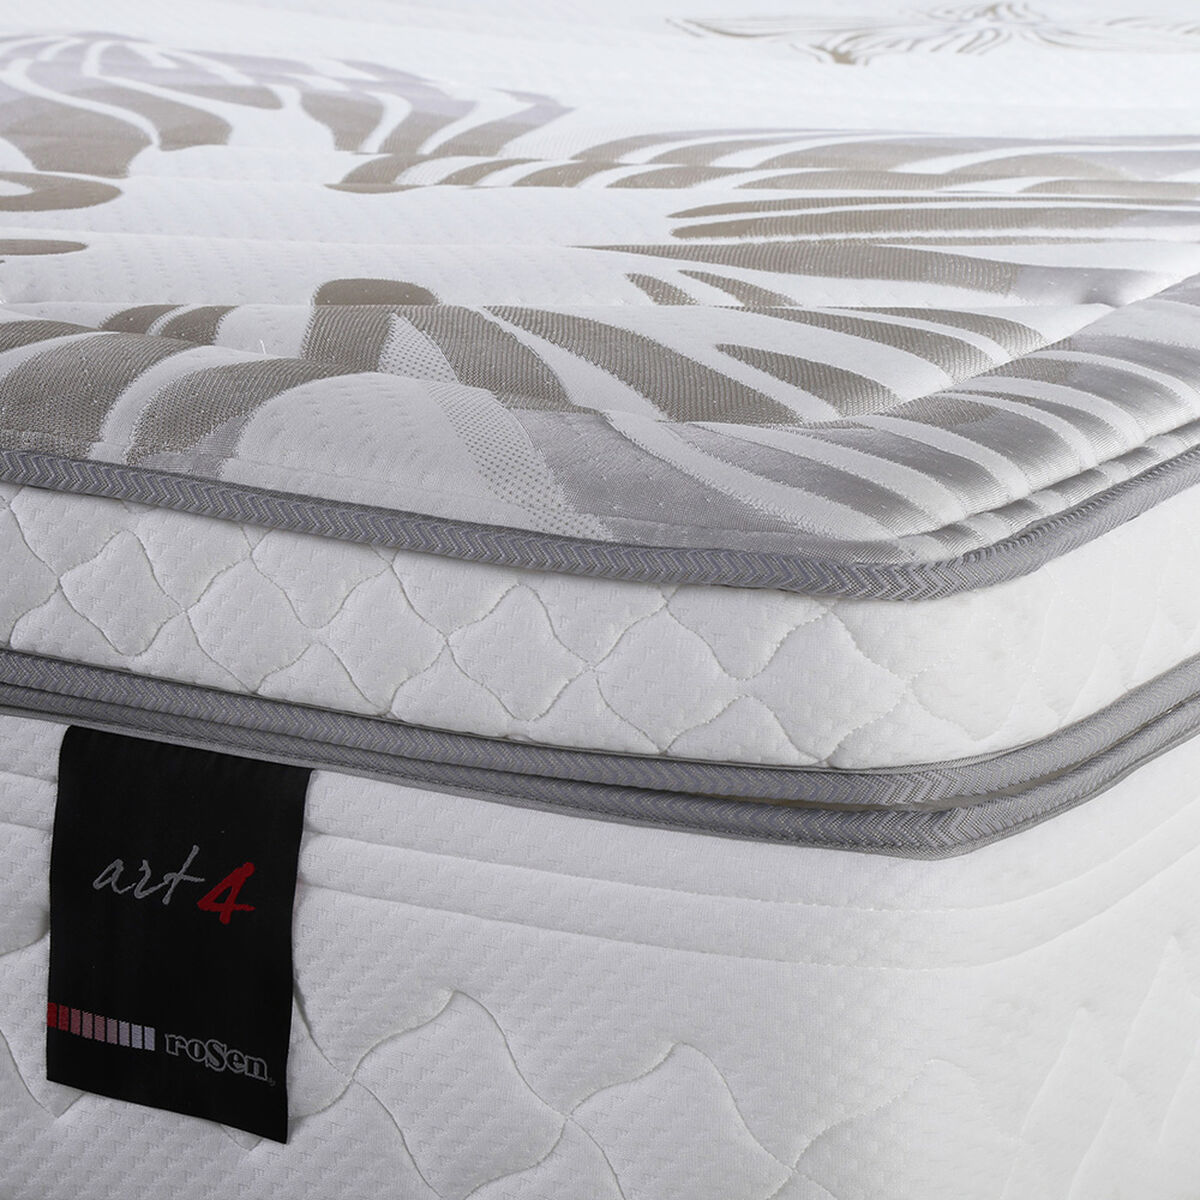 Cama Europea Super King Art 4 +Almohadas